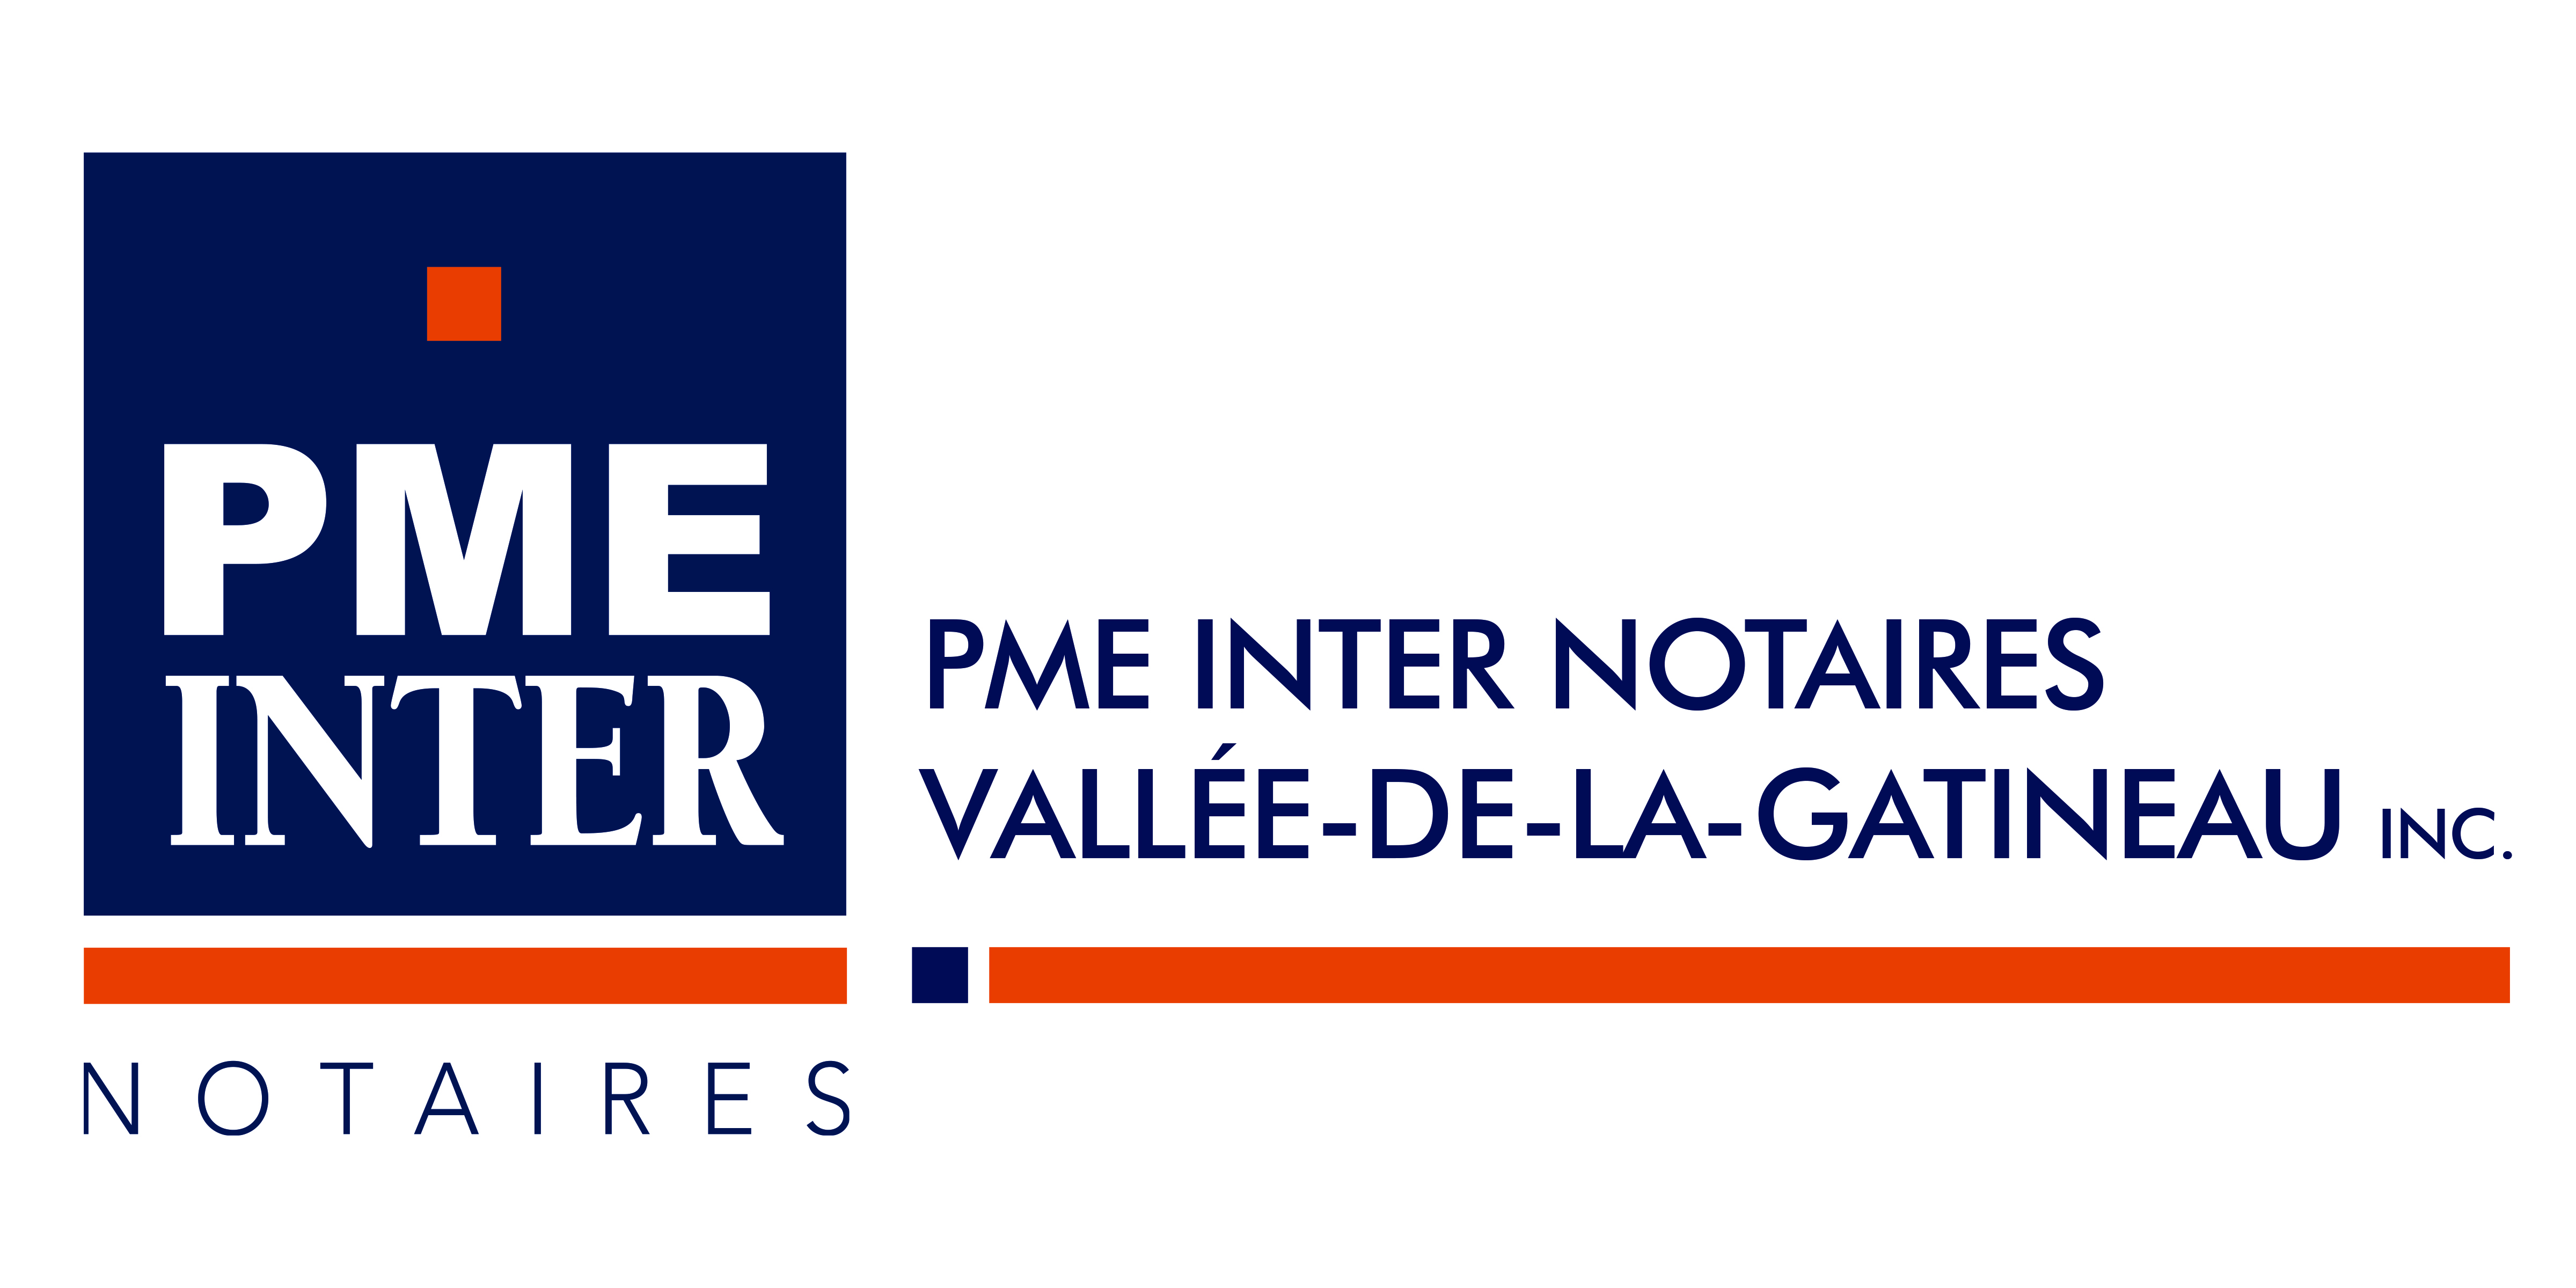 PME Inter Notaires VG copy